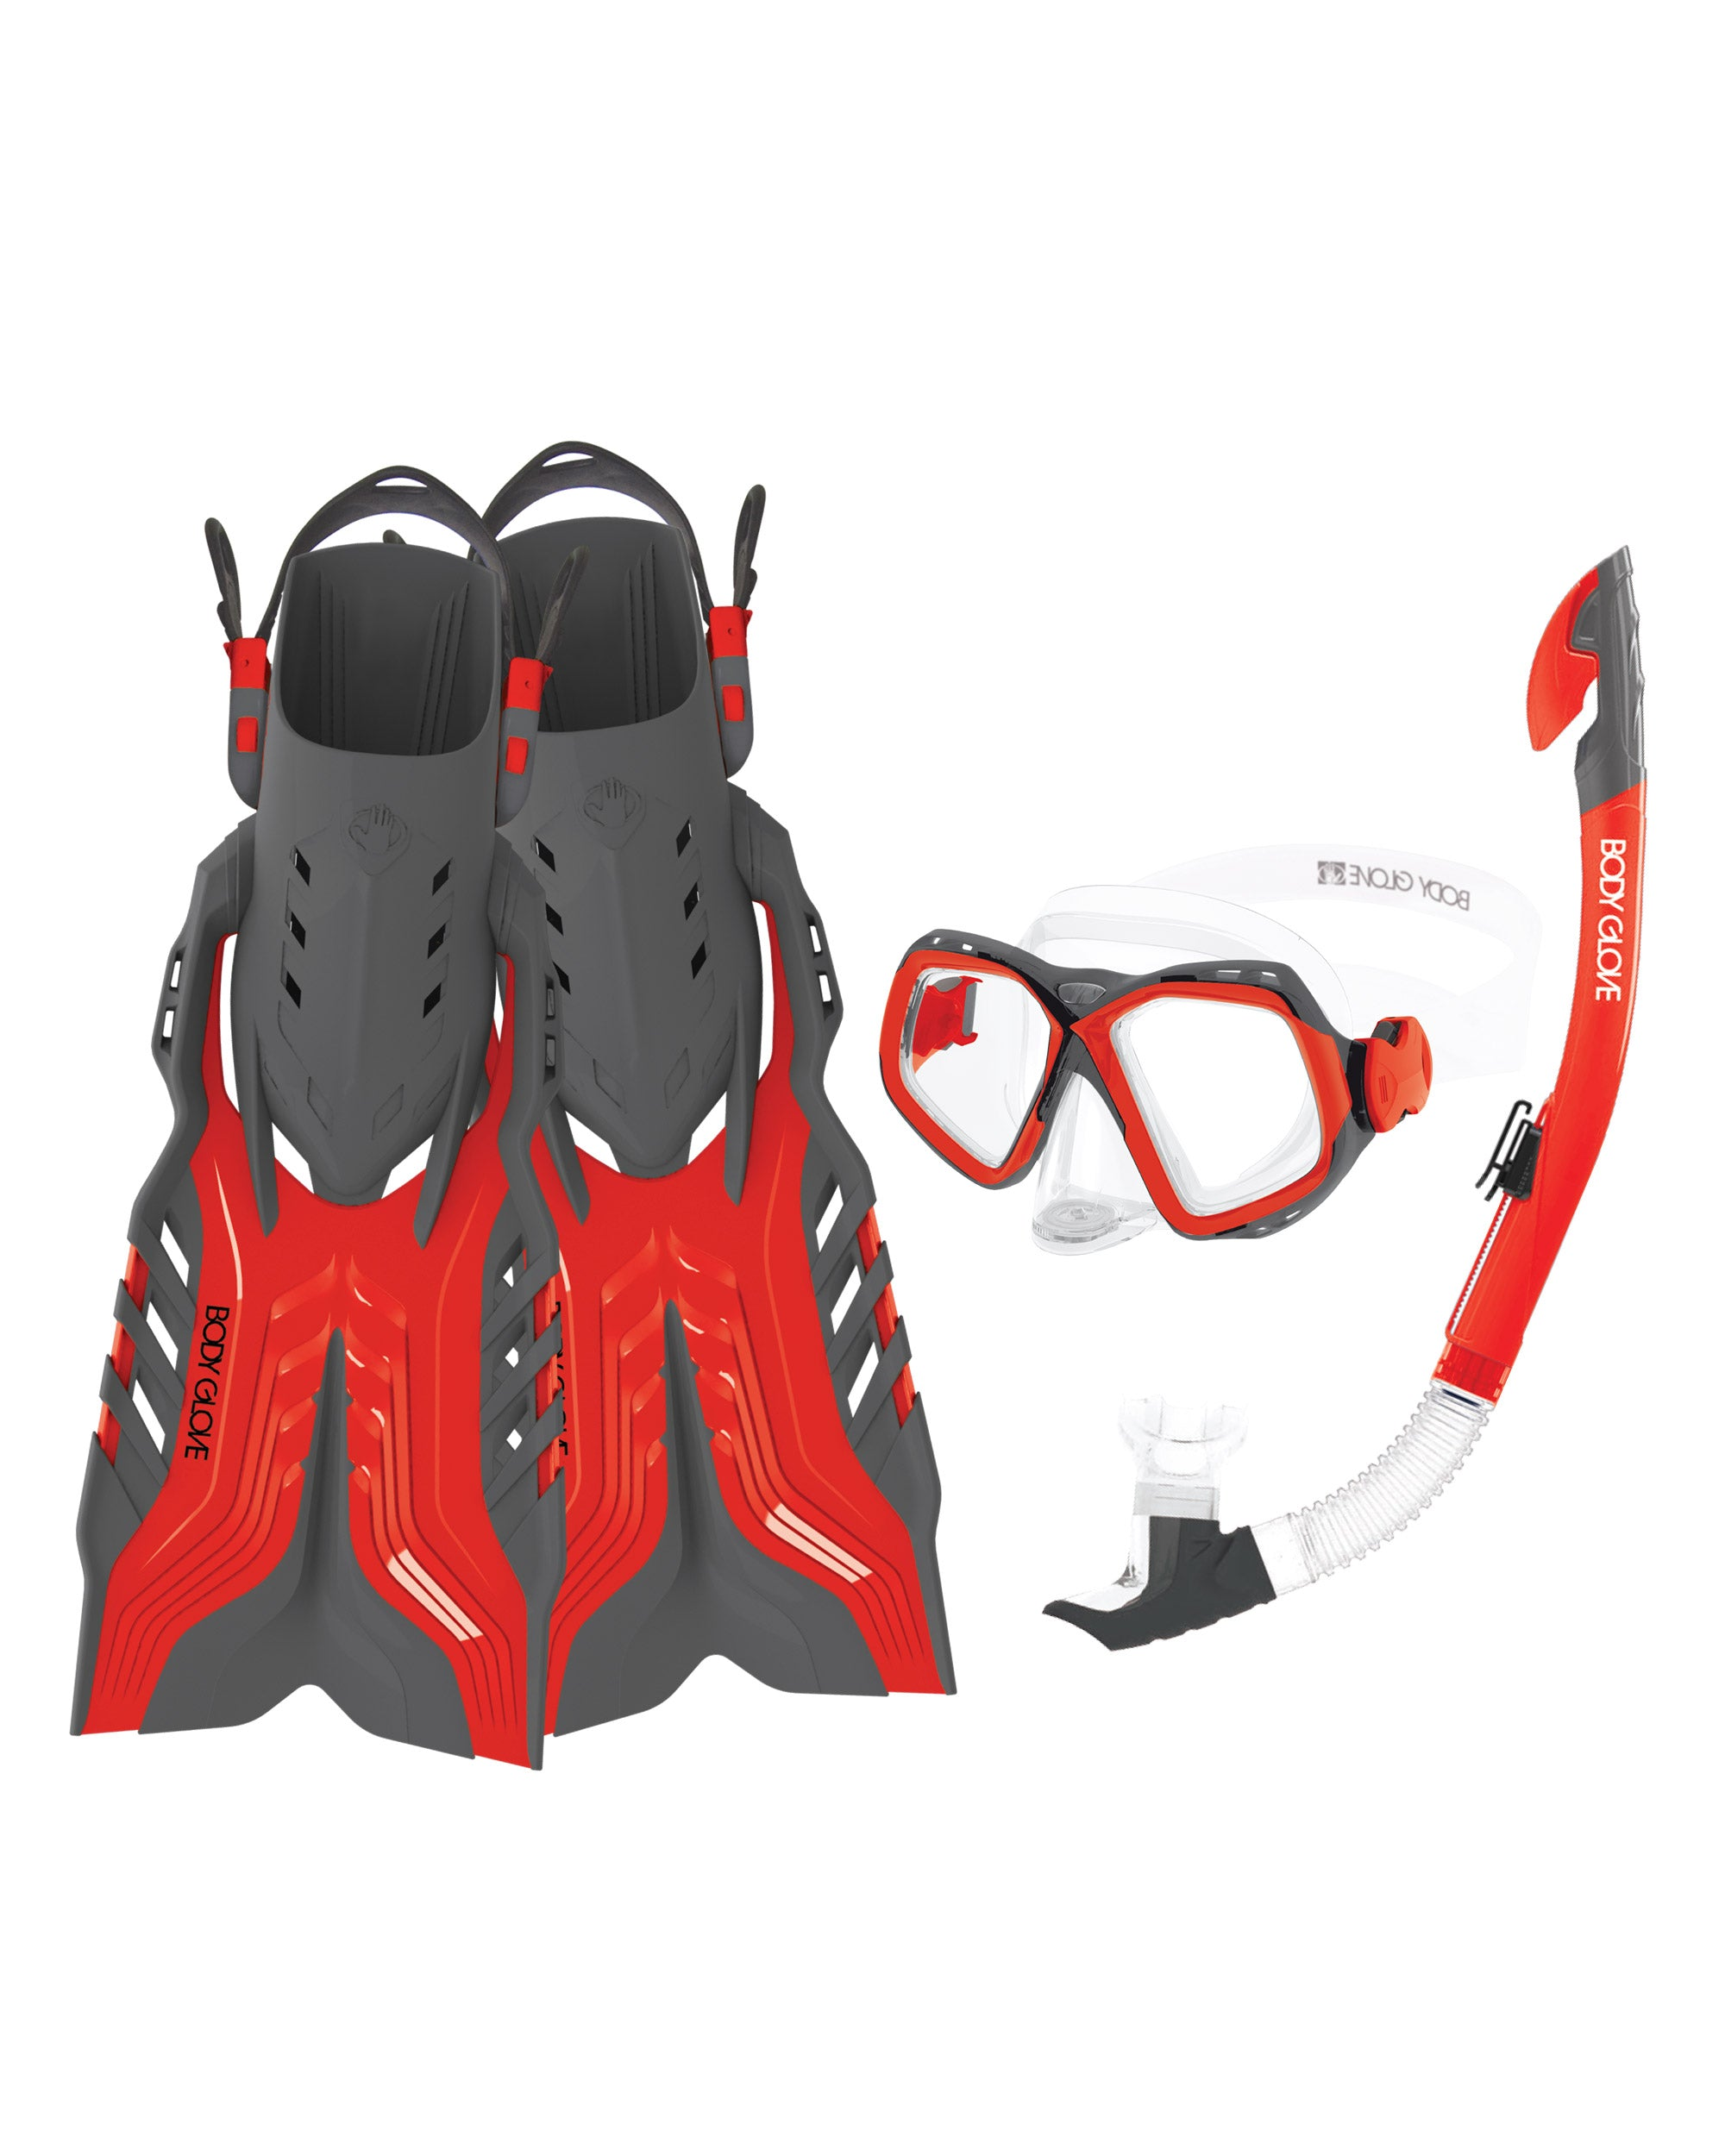 Fiji Mask/Snorkel/Fin Snorkeling Set - Red/Grey